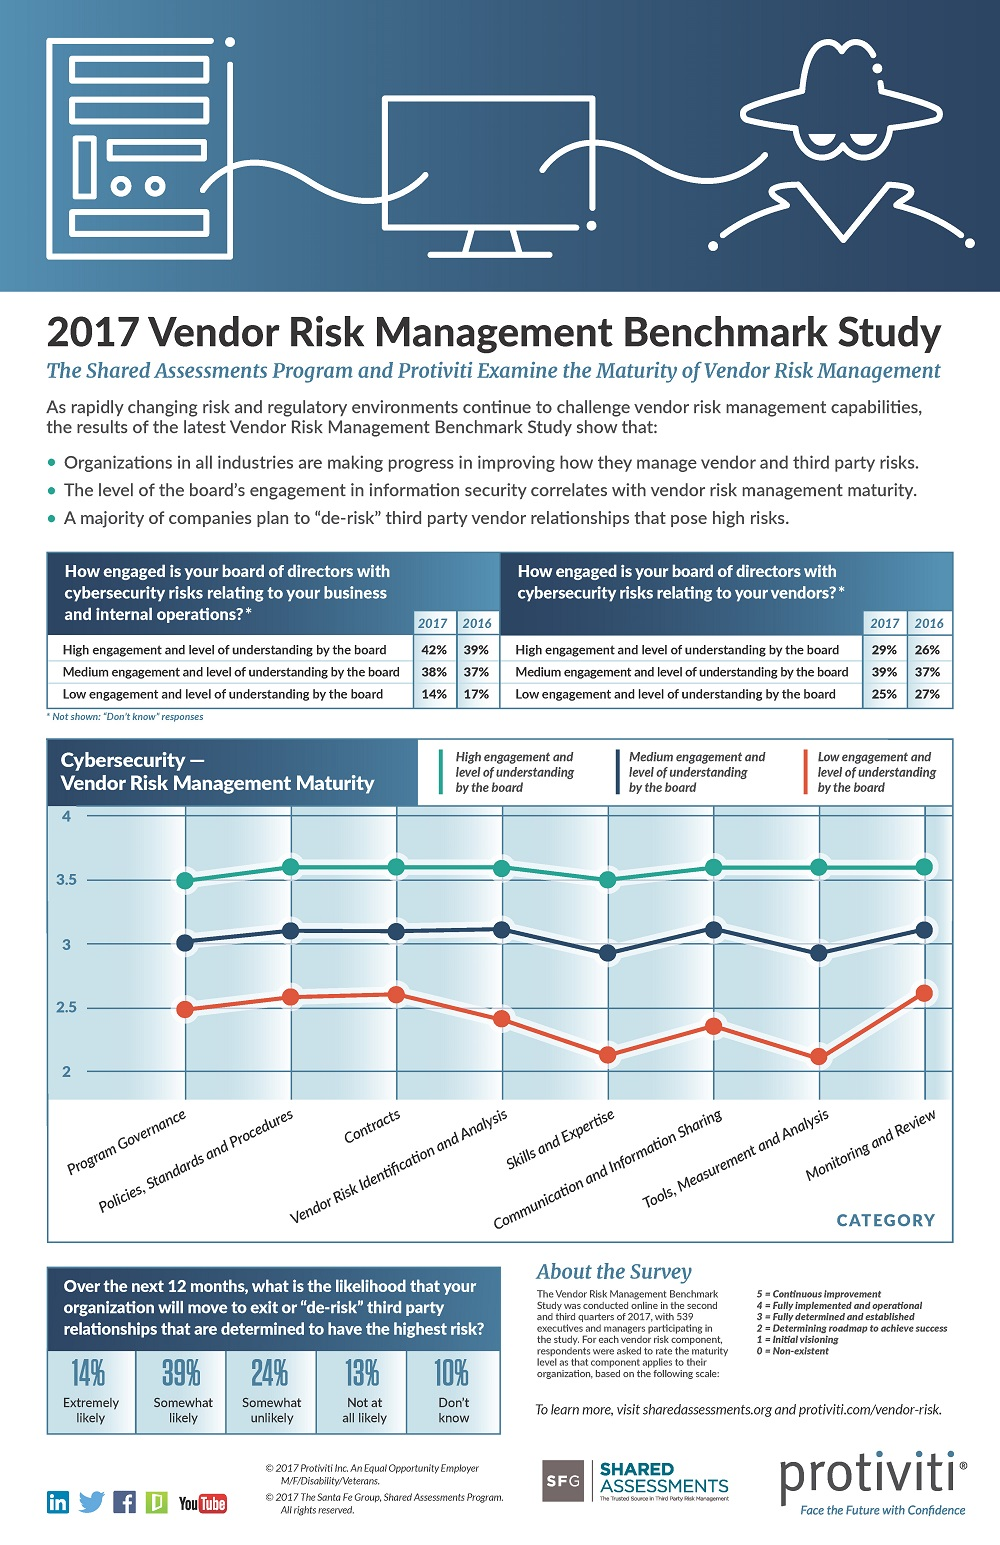 2017 Vendor Risk Management Survey Infographic